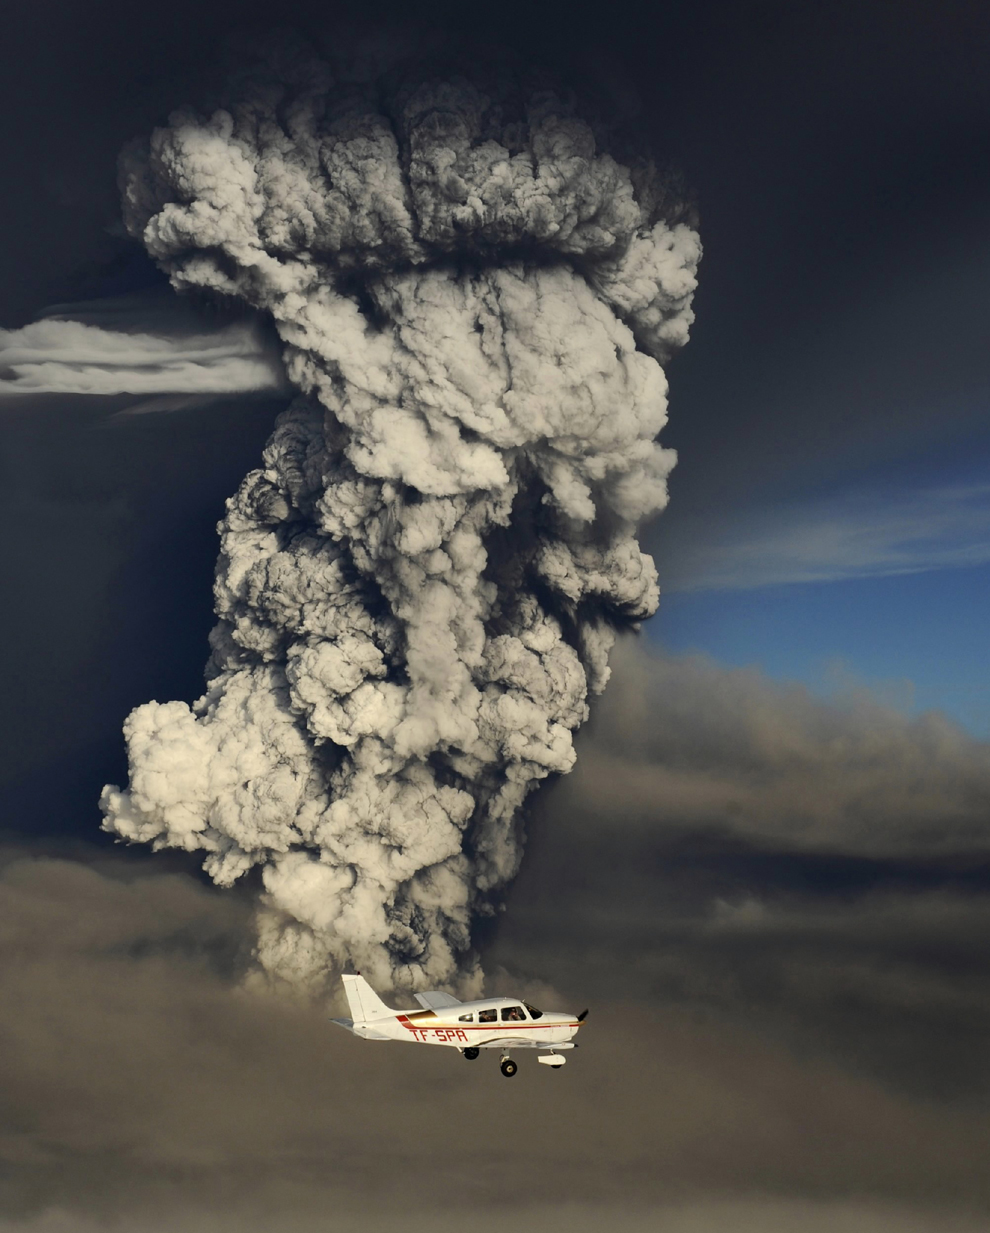 Another Icelandic eruption: Grimsvotn volcano